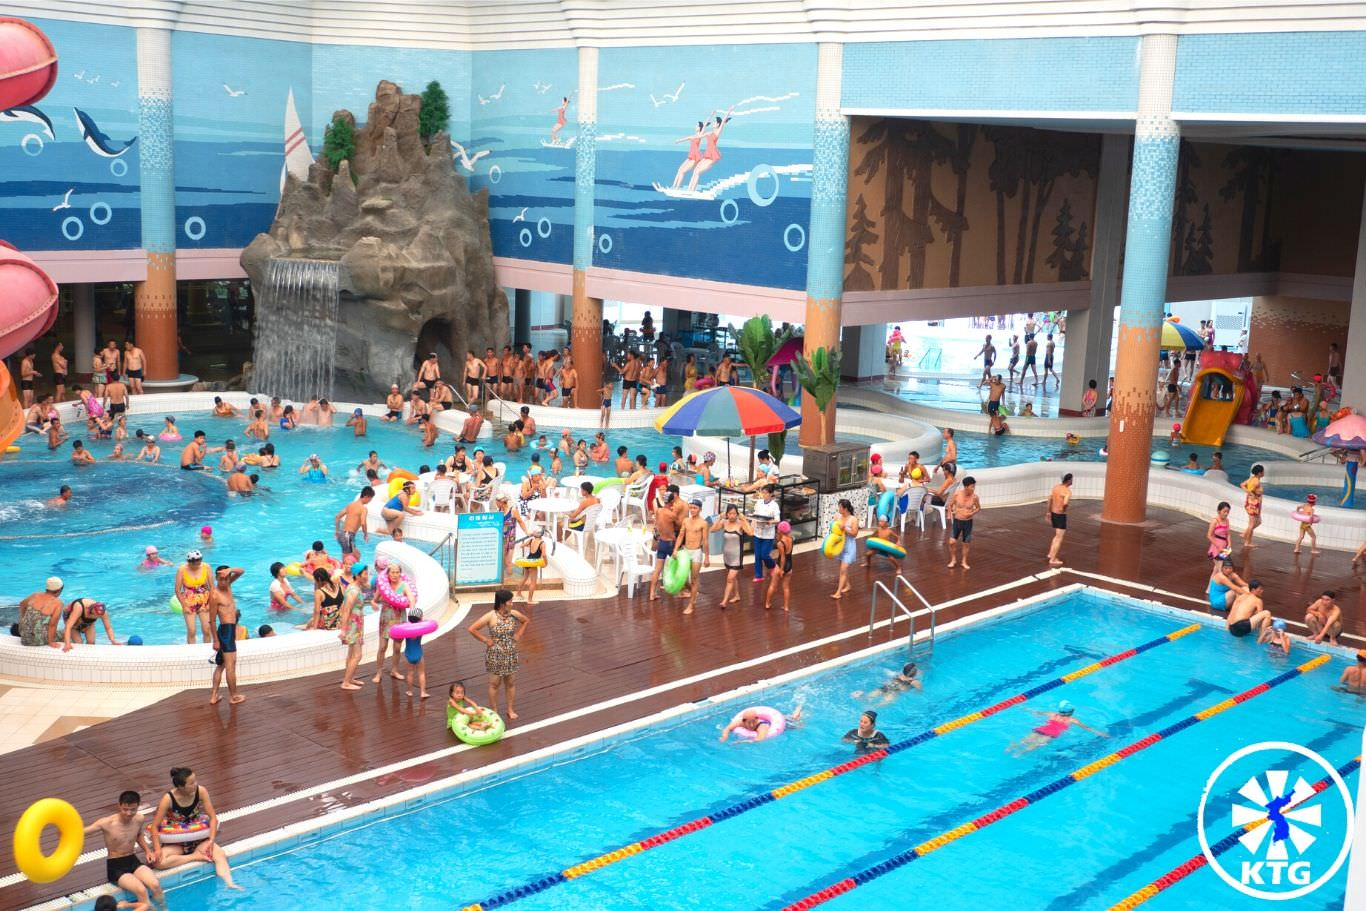 Munsu Waterpark in Pyongyang in North Korea with KTG tours. Check out the slides and have fun with North Koreans!